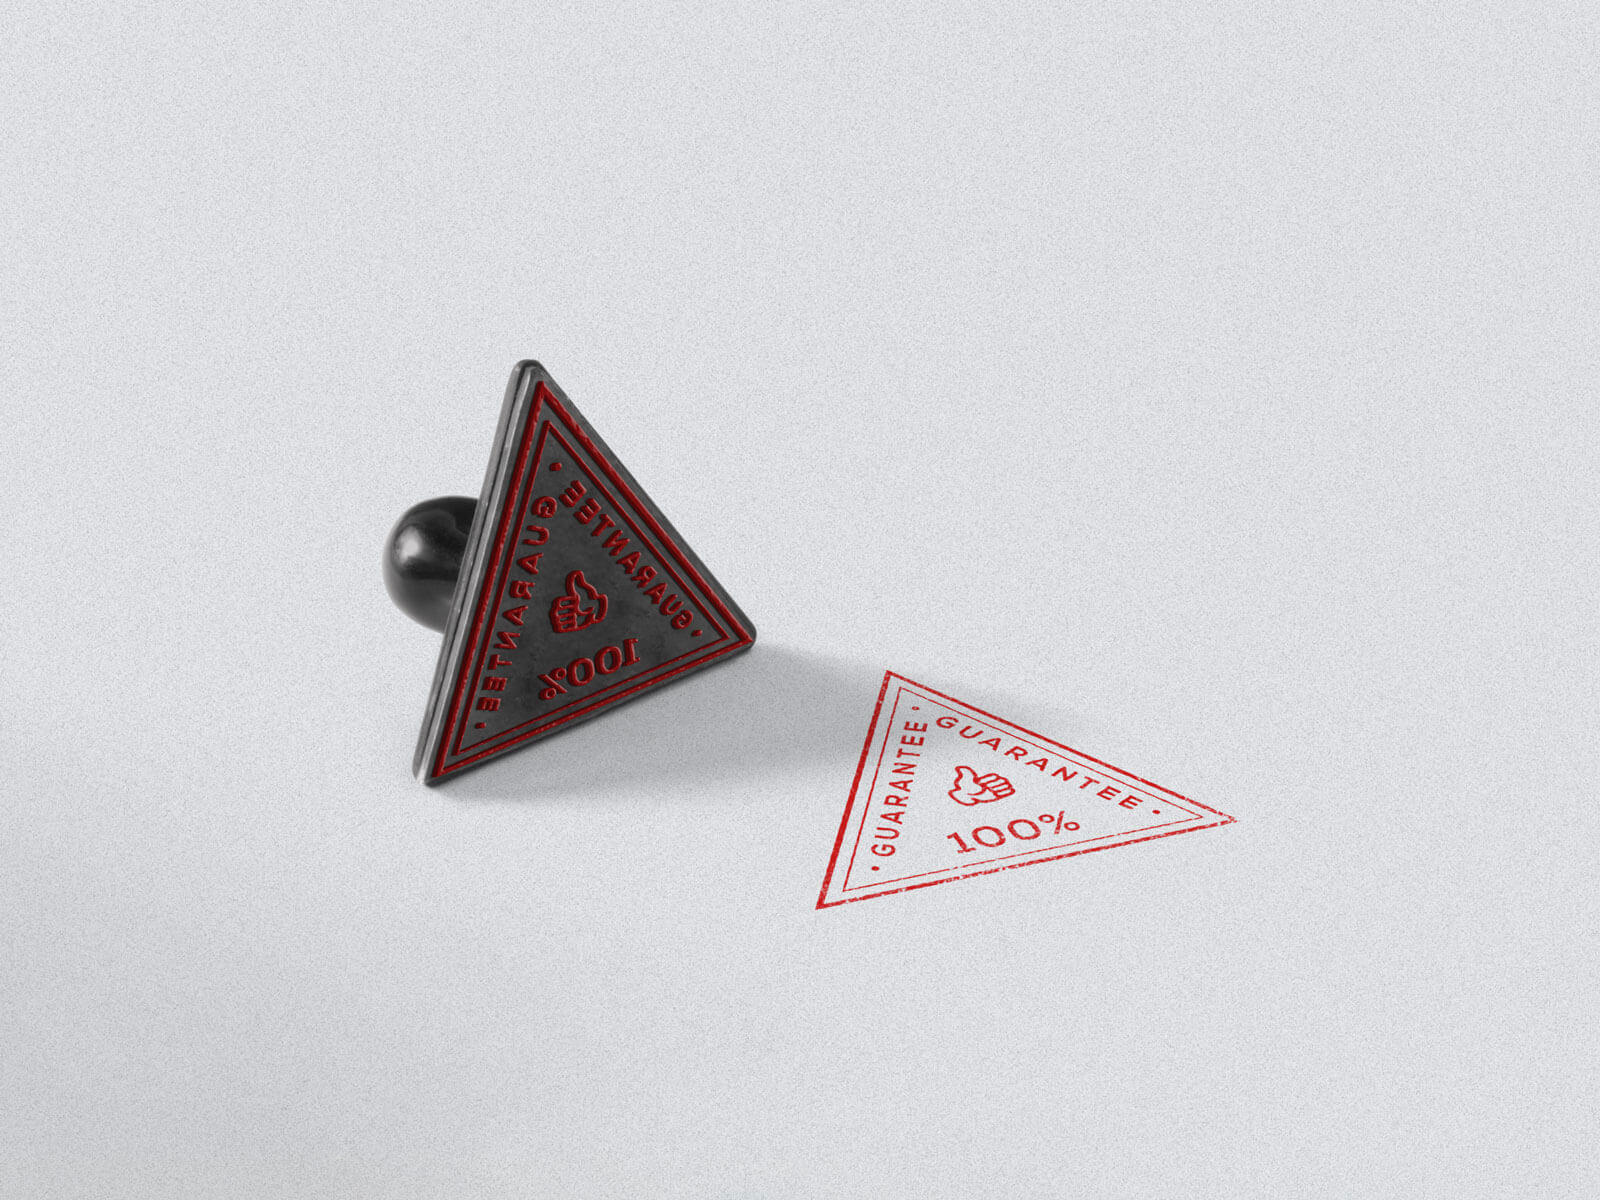 Free-Triangle-Rubber-Stamp-Mockup-PSD